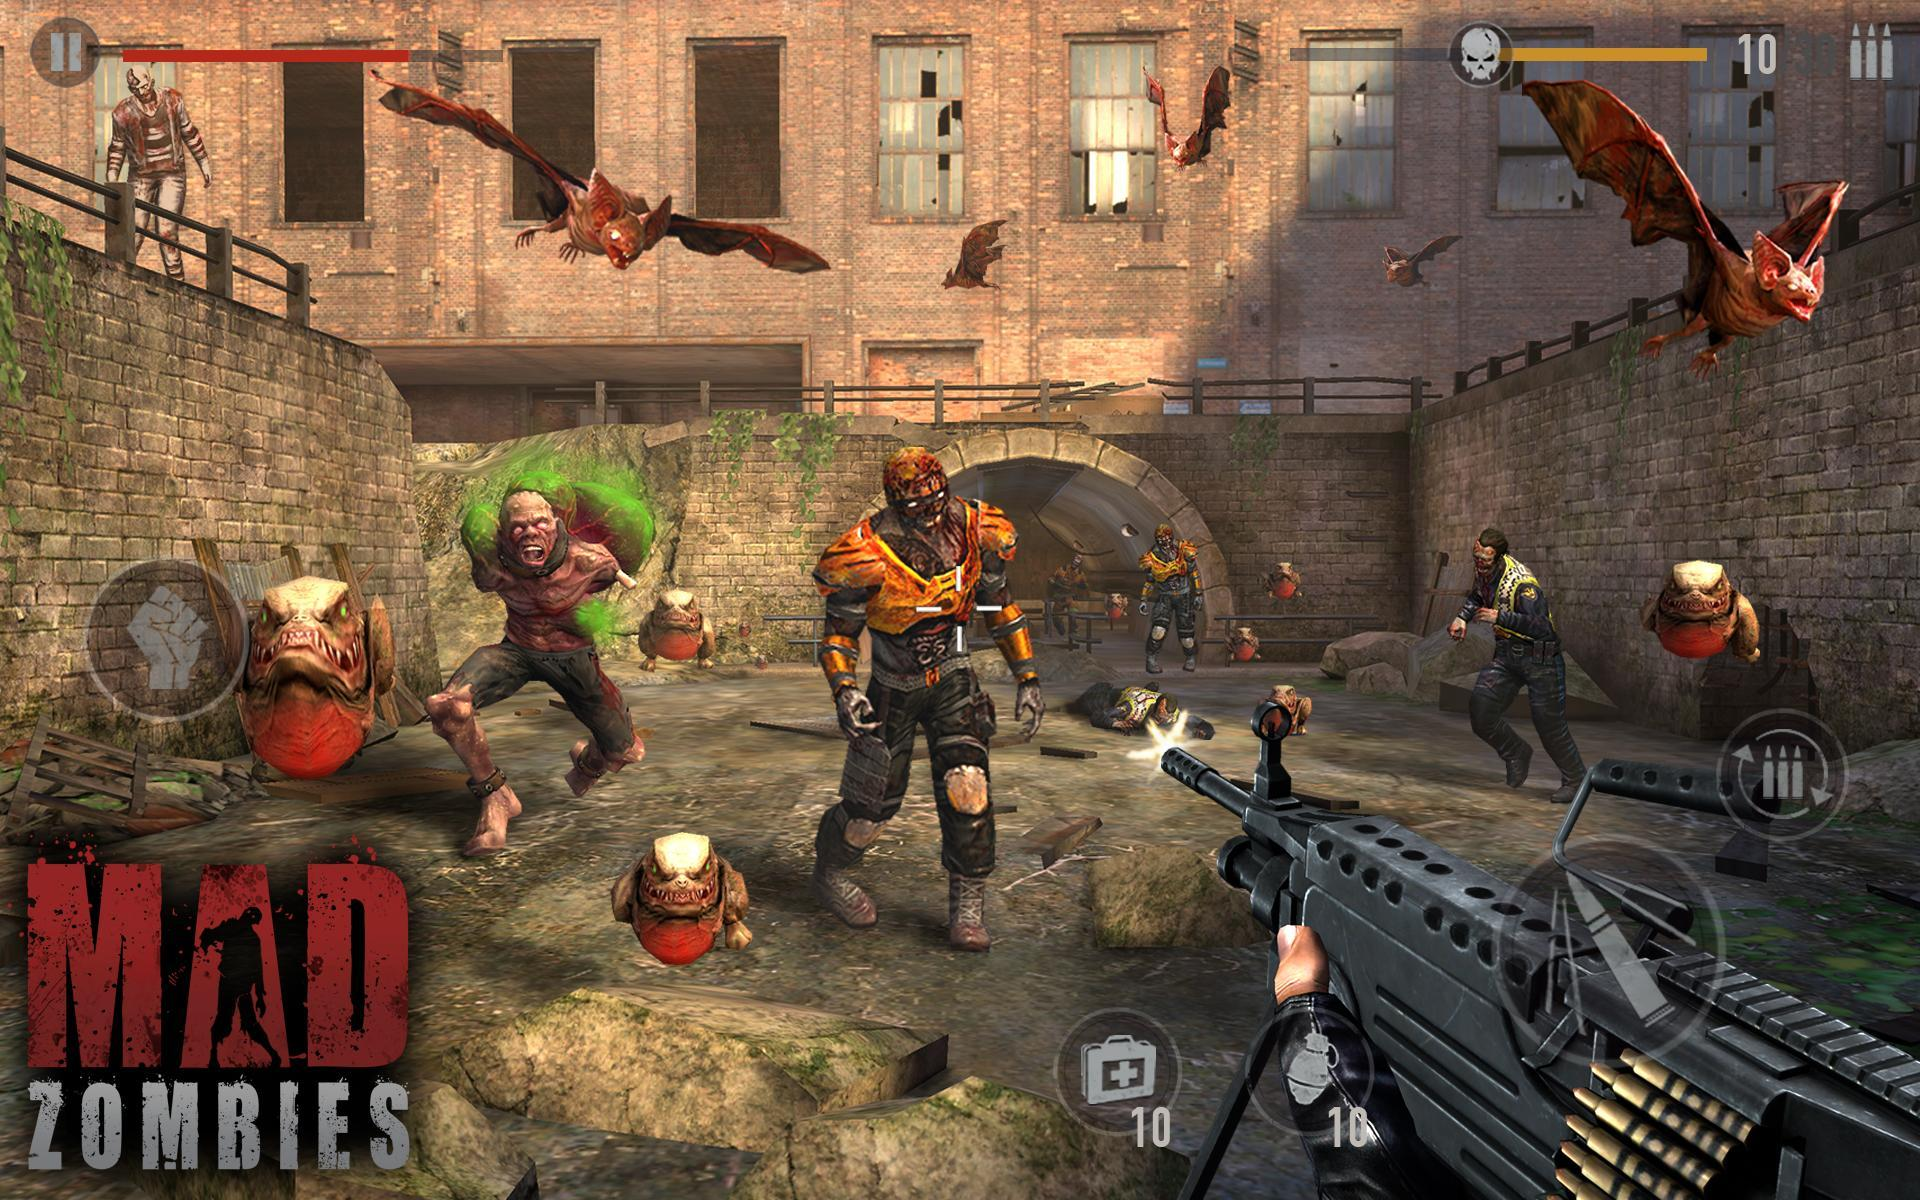 MAD ZOMBIES : Offline Zombie Games for Android - APK Download